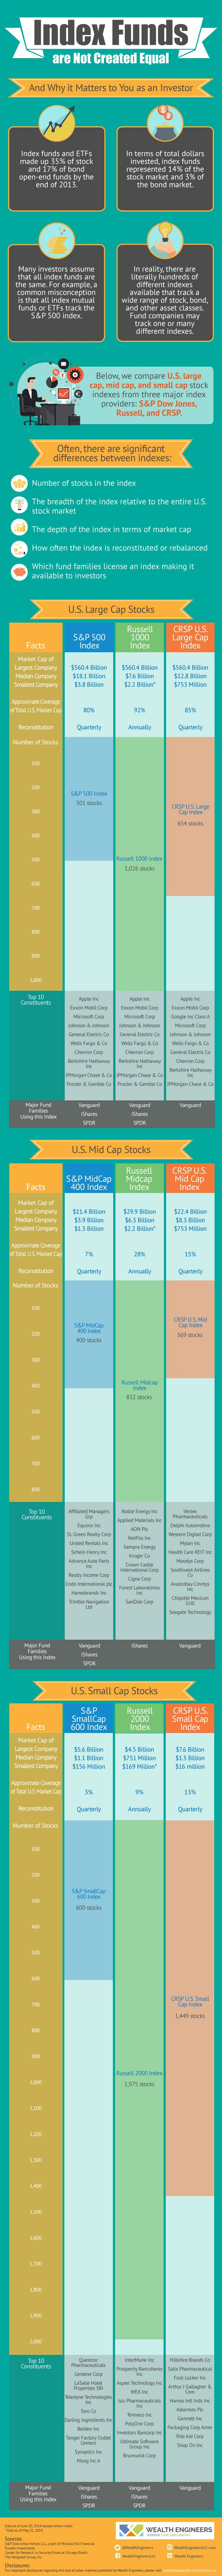 Many investors assume that all index funds are the same.  However, the reality is that index funds come in all shapes and sizes.  This infographic shows a detailed index fund comparison to help investors understand some of the key differences.